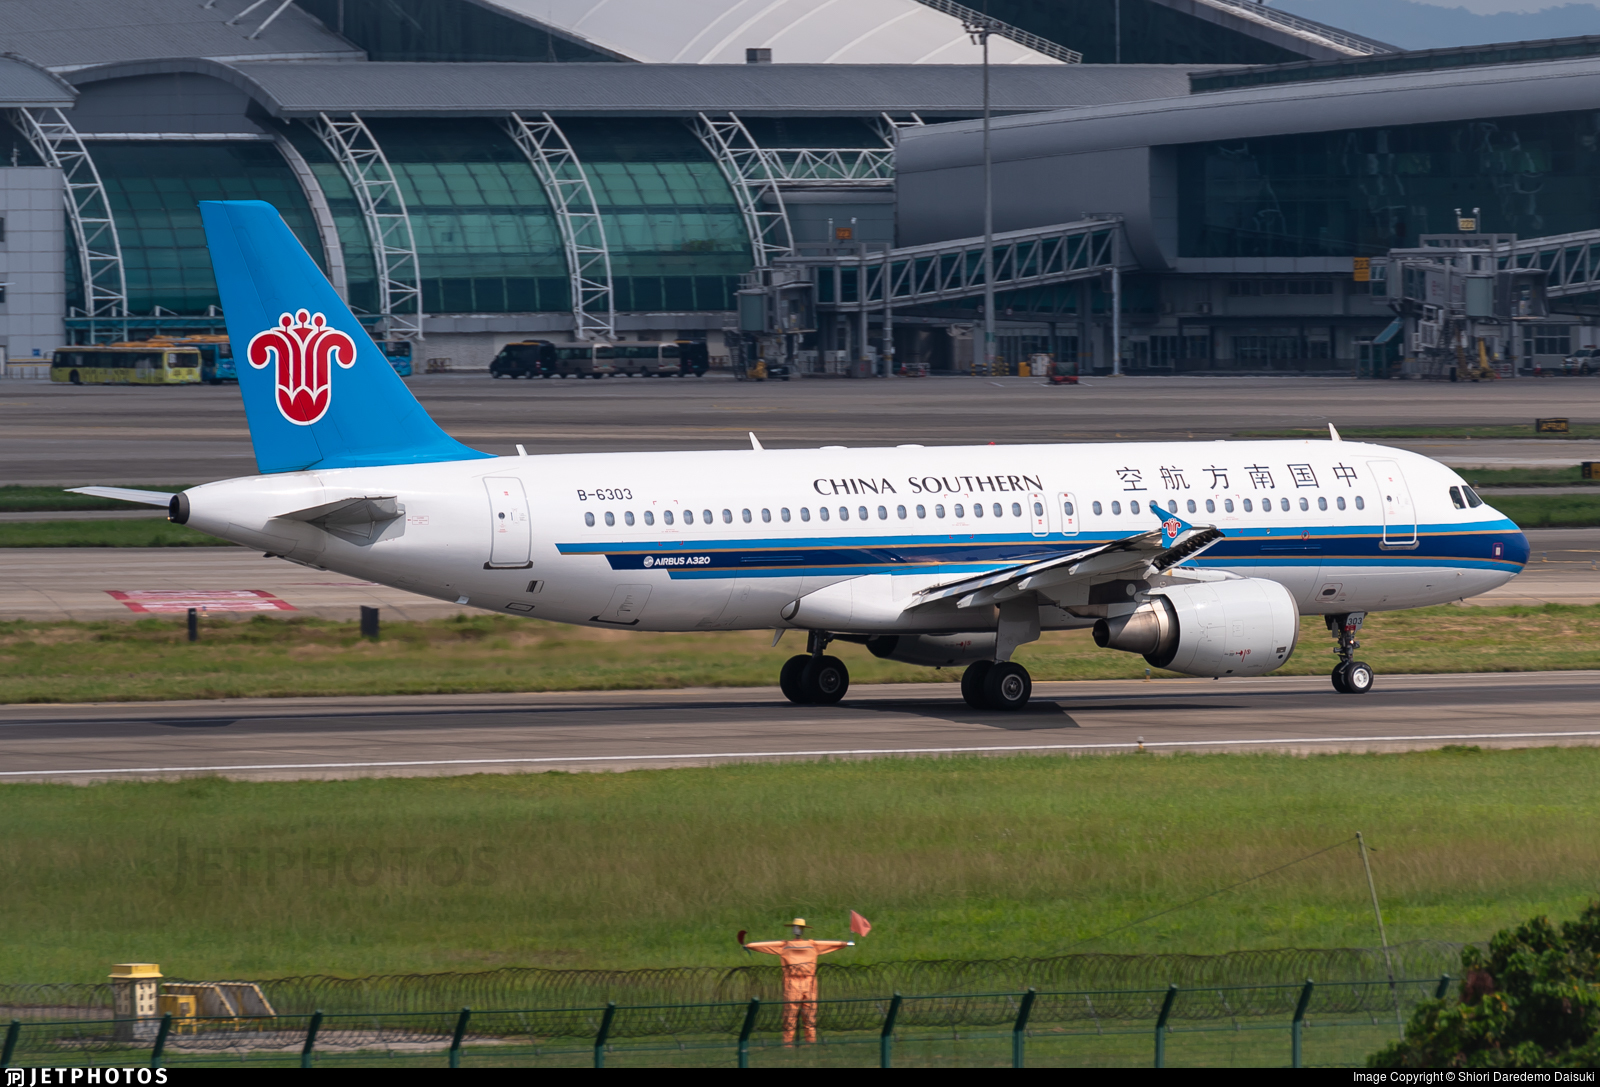 B-6303 - Airbus A320-214 - China Southern Airlines